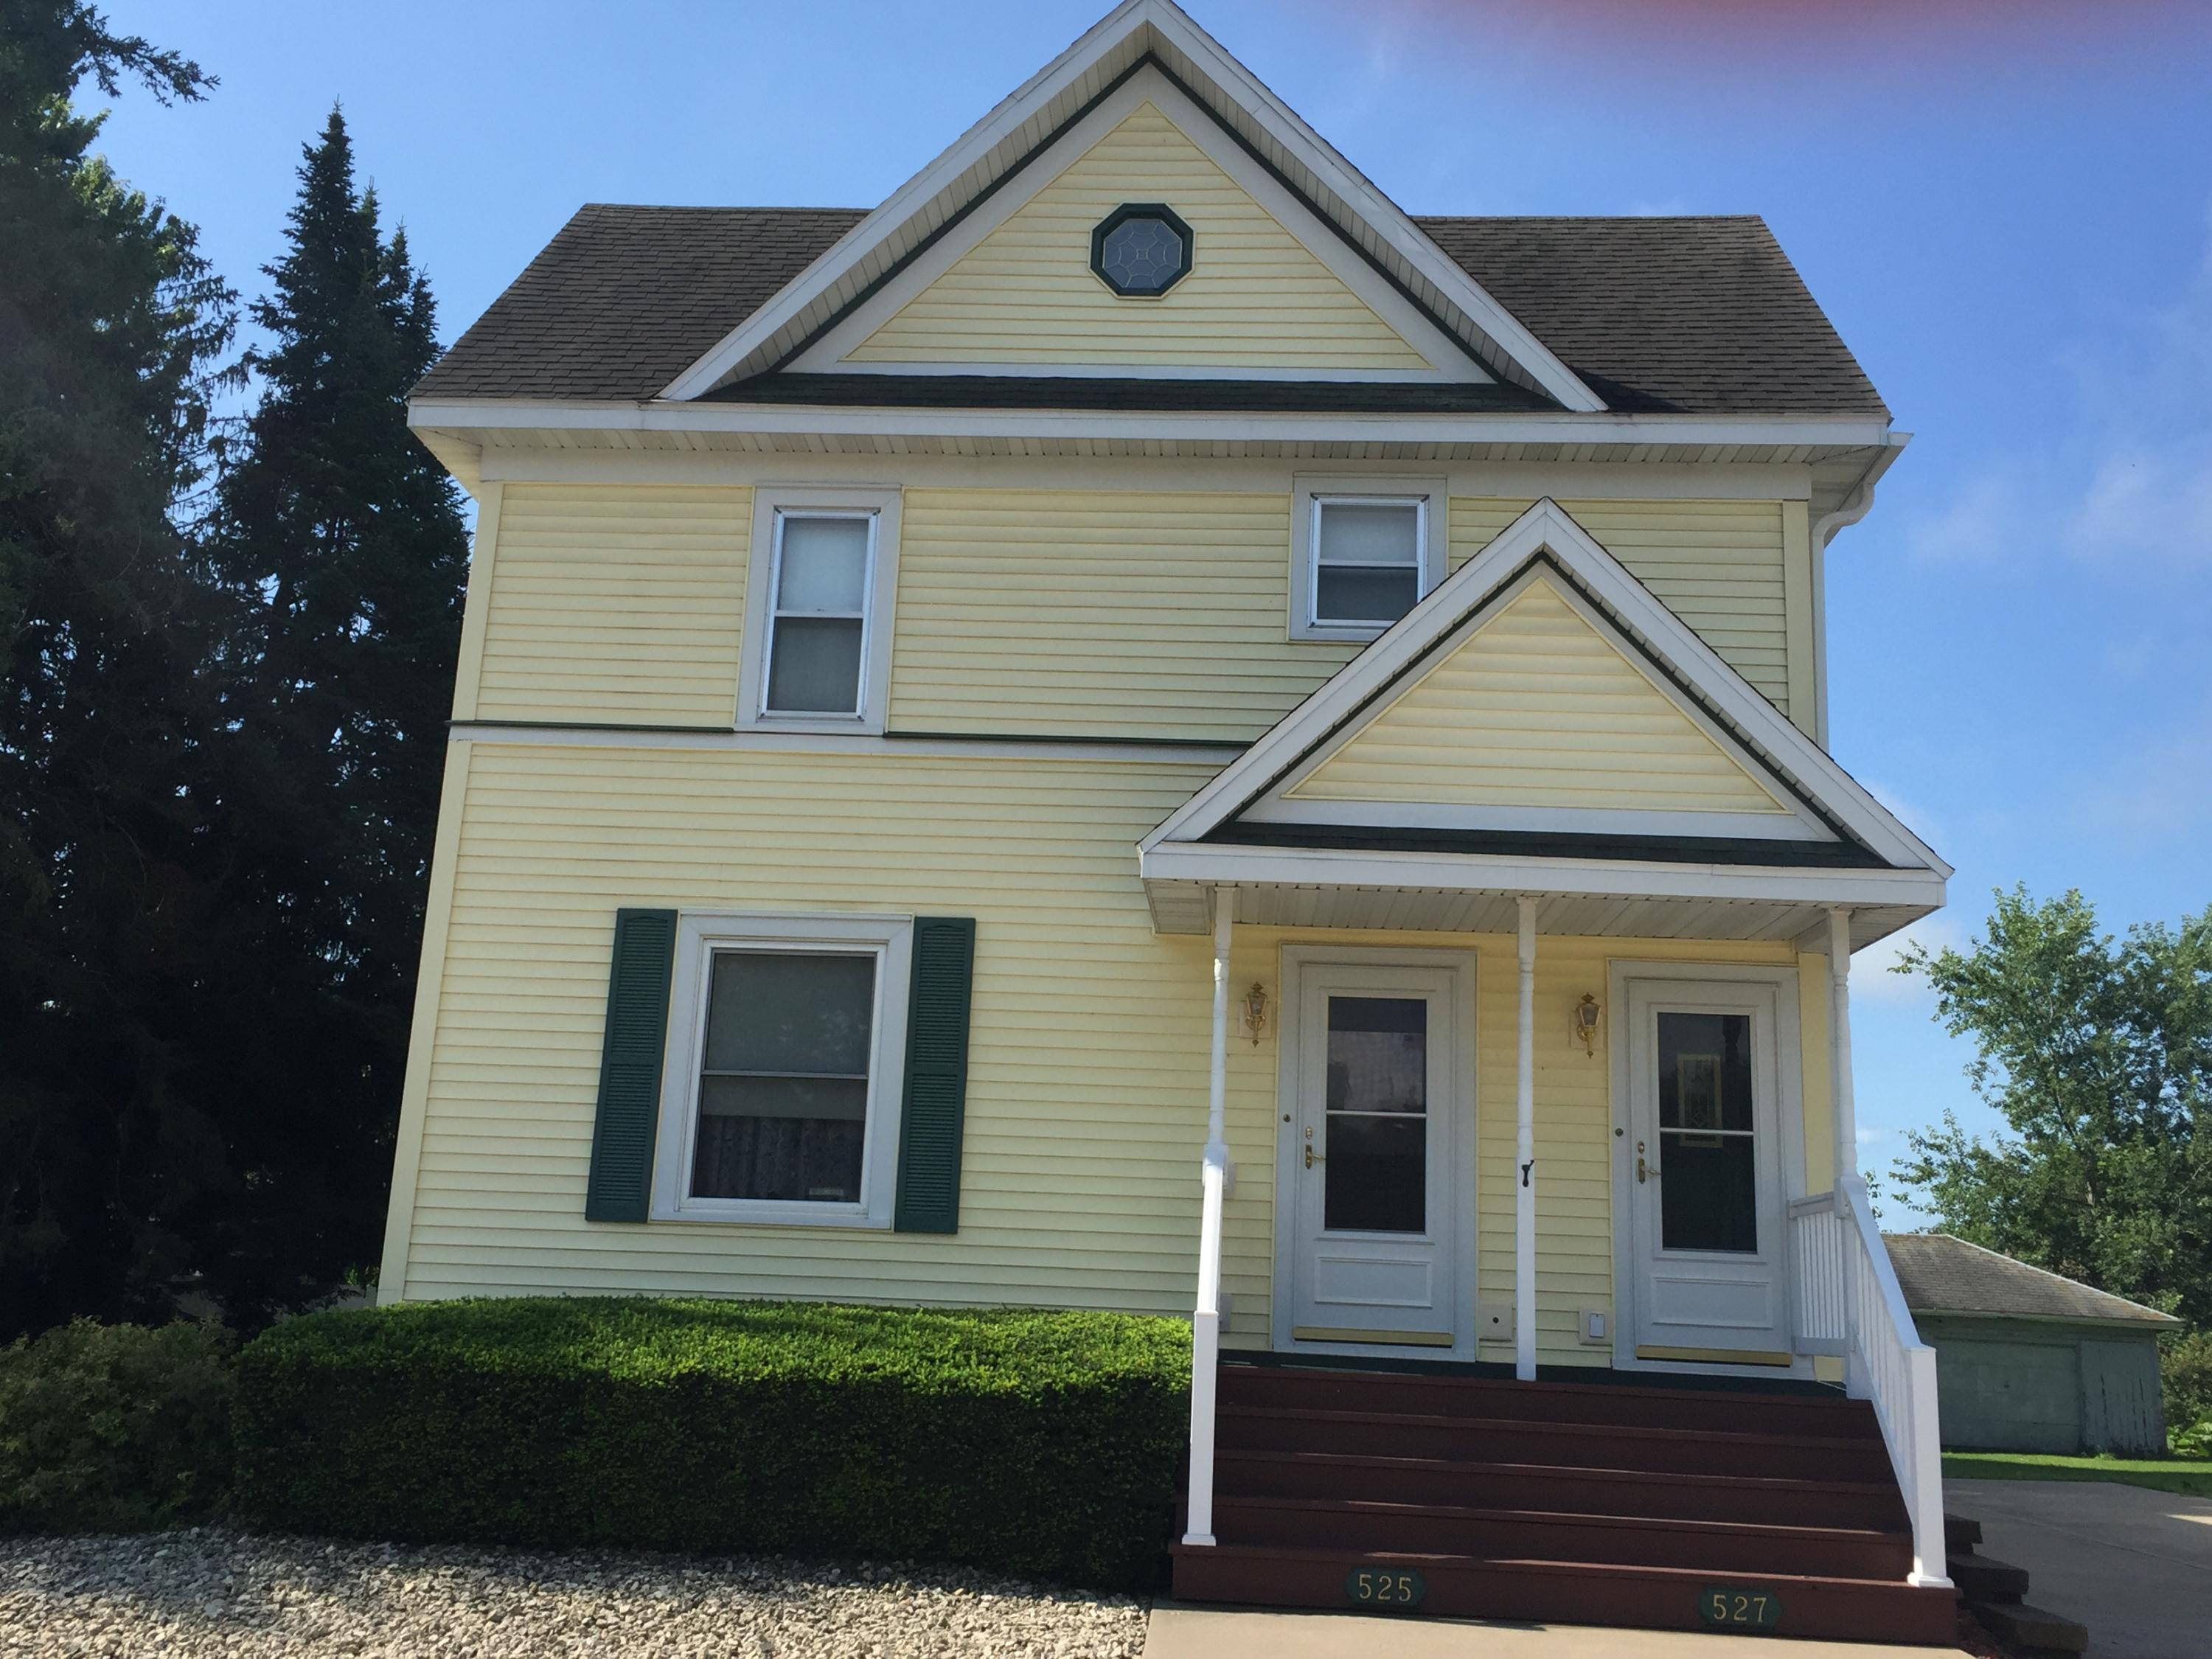 525-527 Hamilton ST W<br /> West Salem,La Crosse,54669,1 Bedroom Bedrooms,2 BathroomsBathrooms,Two-family,Hamilton ST W,1605259